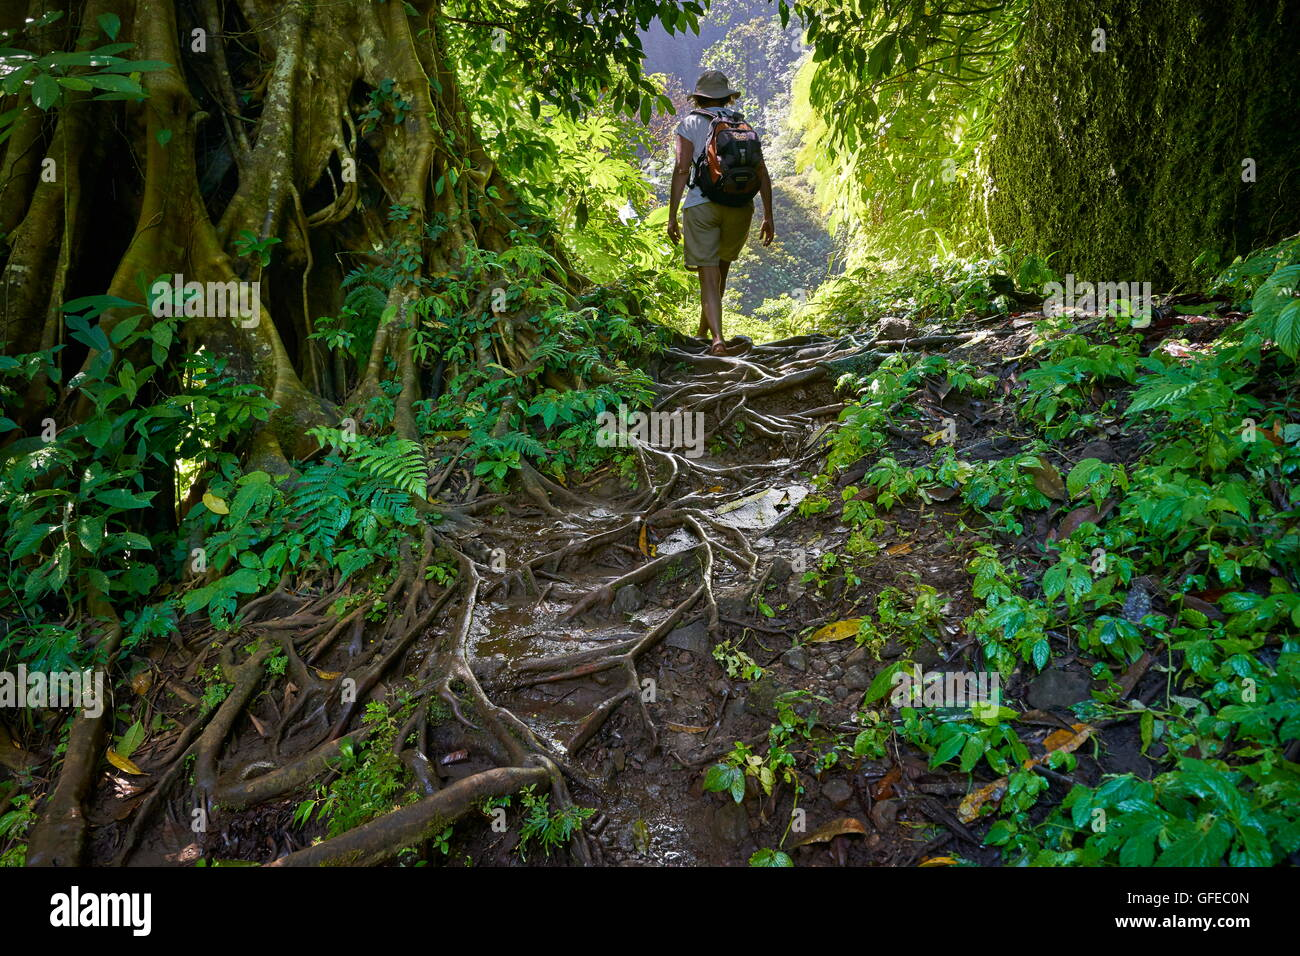 Tourist trekking through the tropical forest, Bali, Indonesia - Stock Image